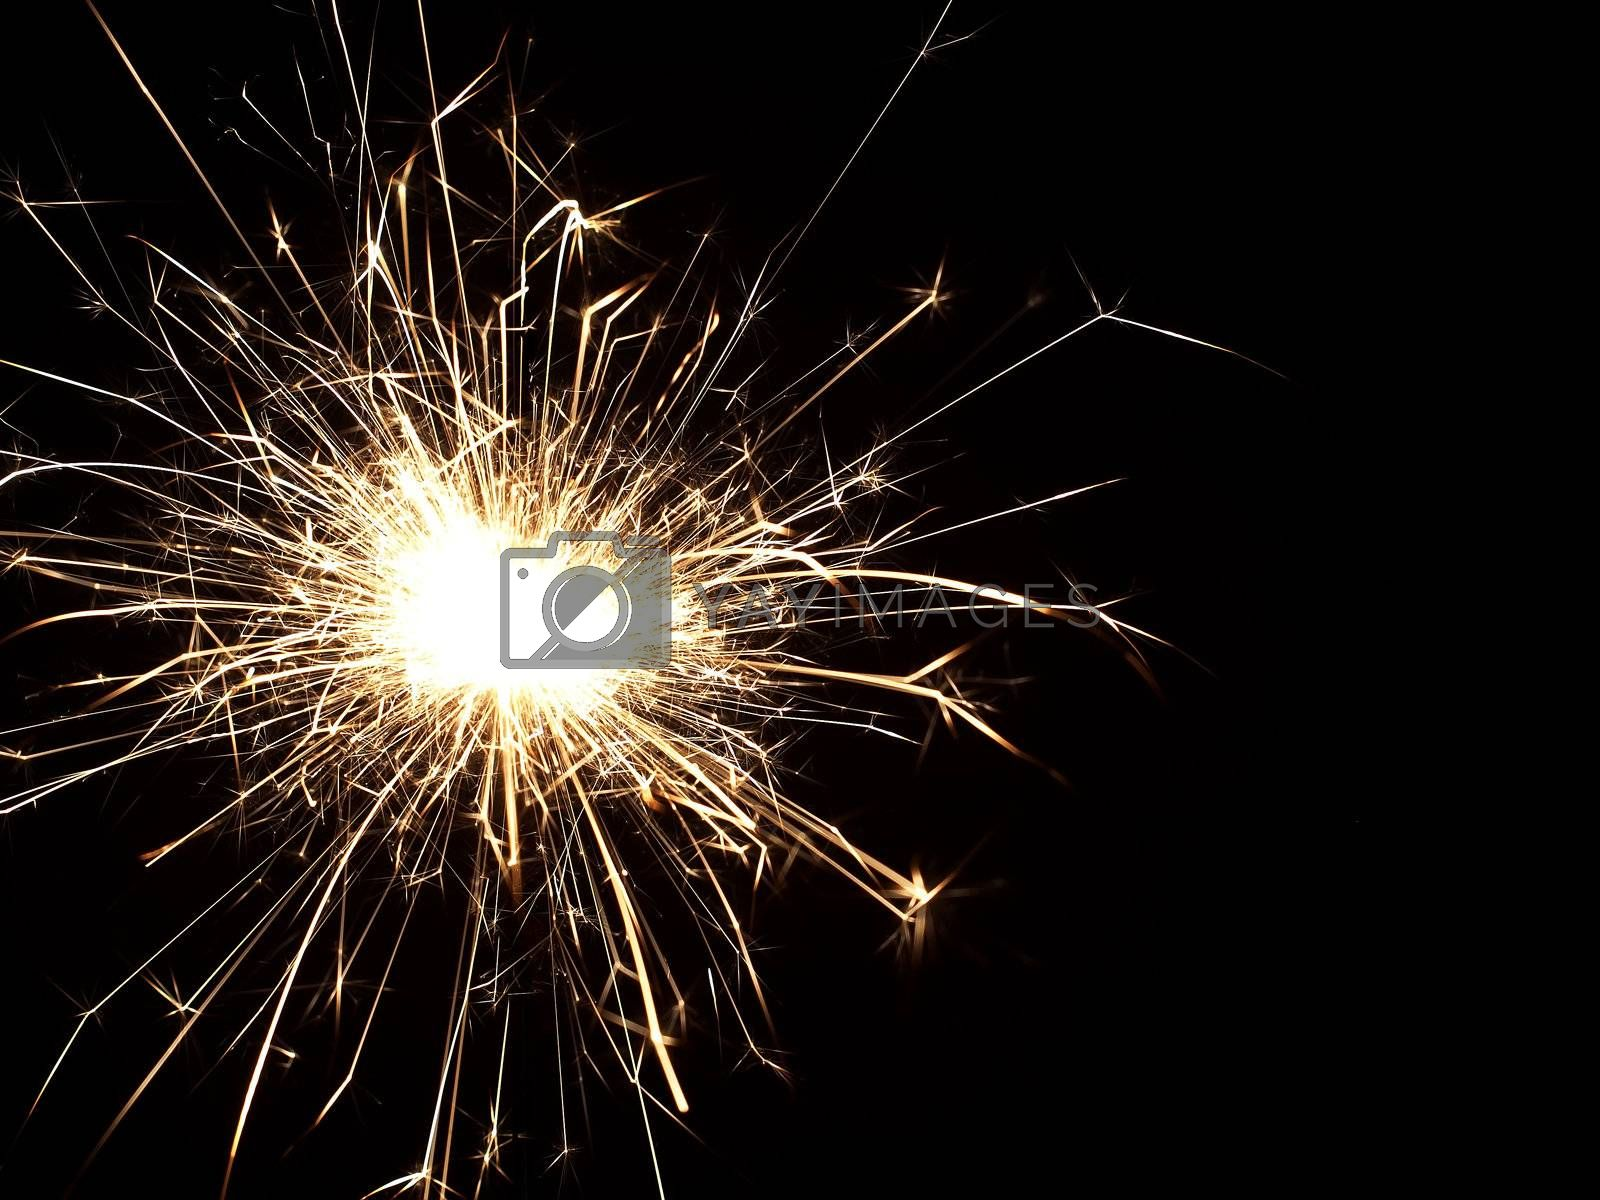 Details of a burning handheld firework over black background